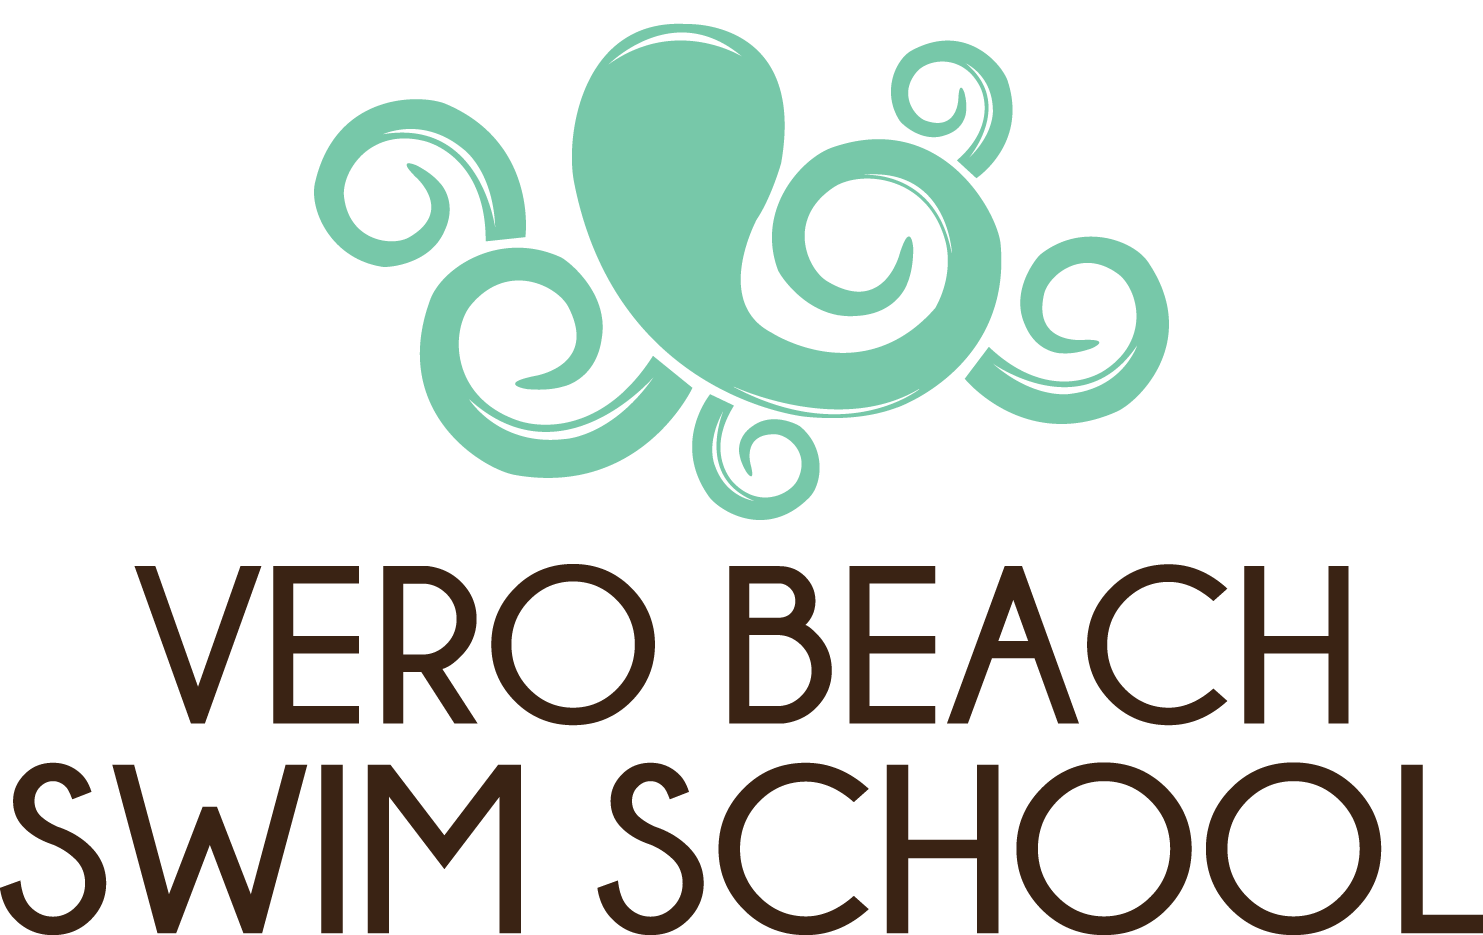 Vero Beach Swim School